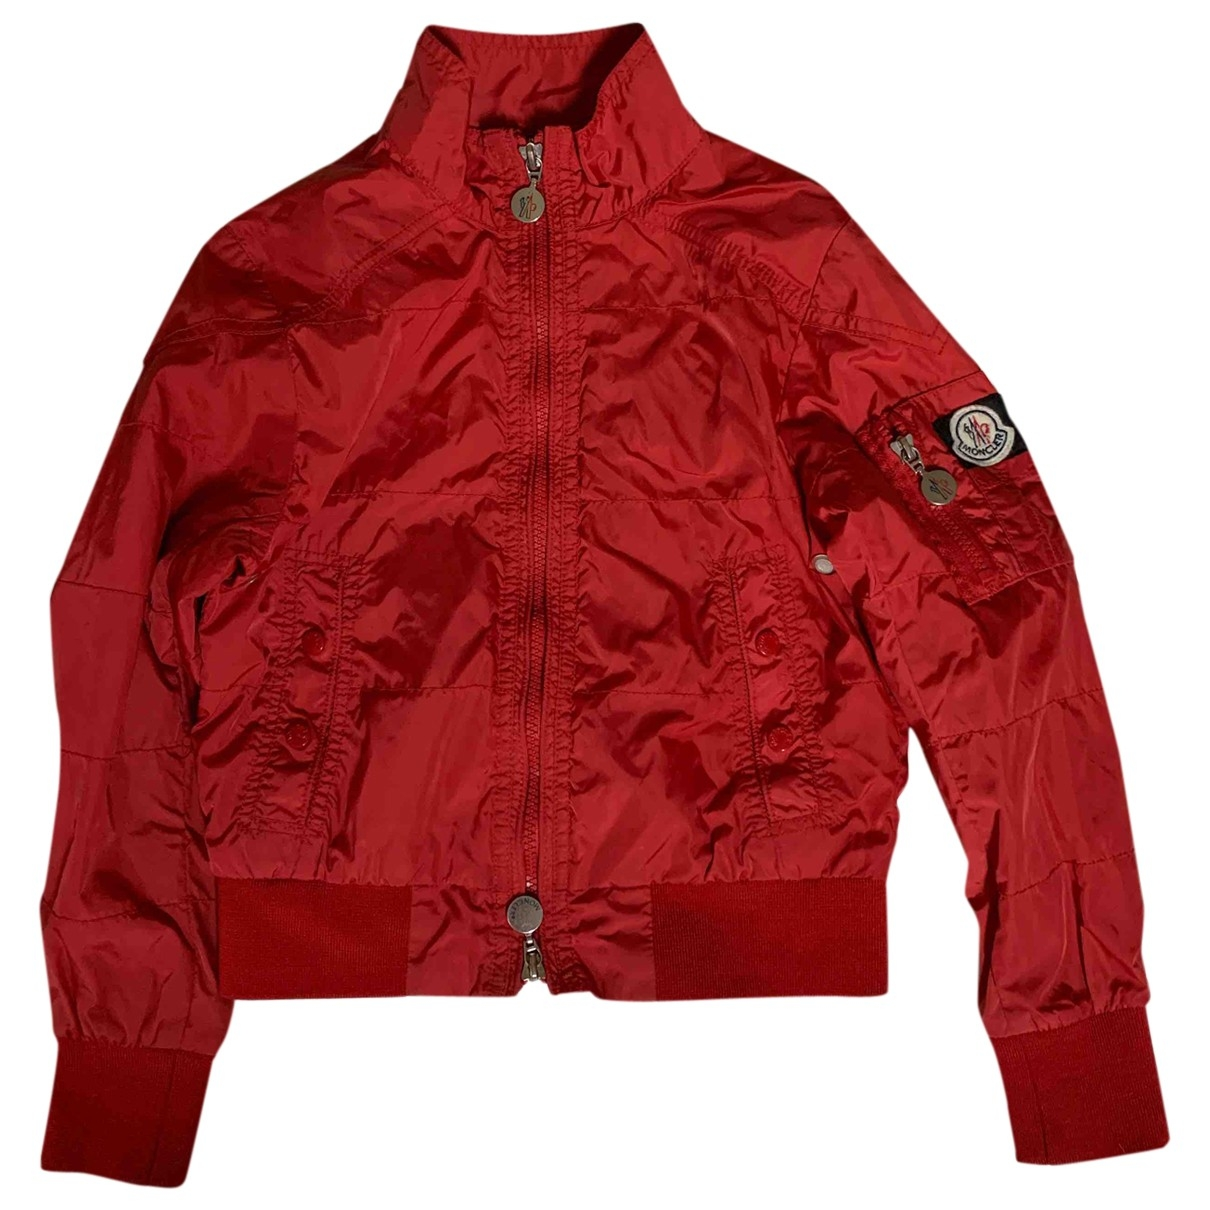 Moncler Classic Red jacket & coat for Kids 8 years - up to 128cm FR